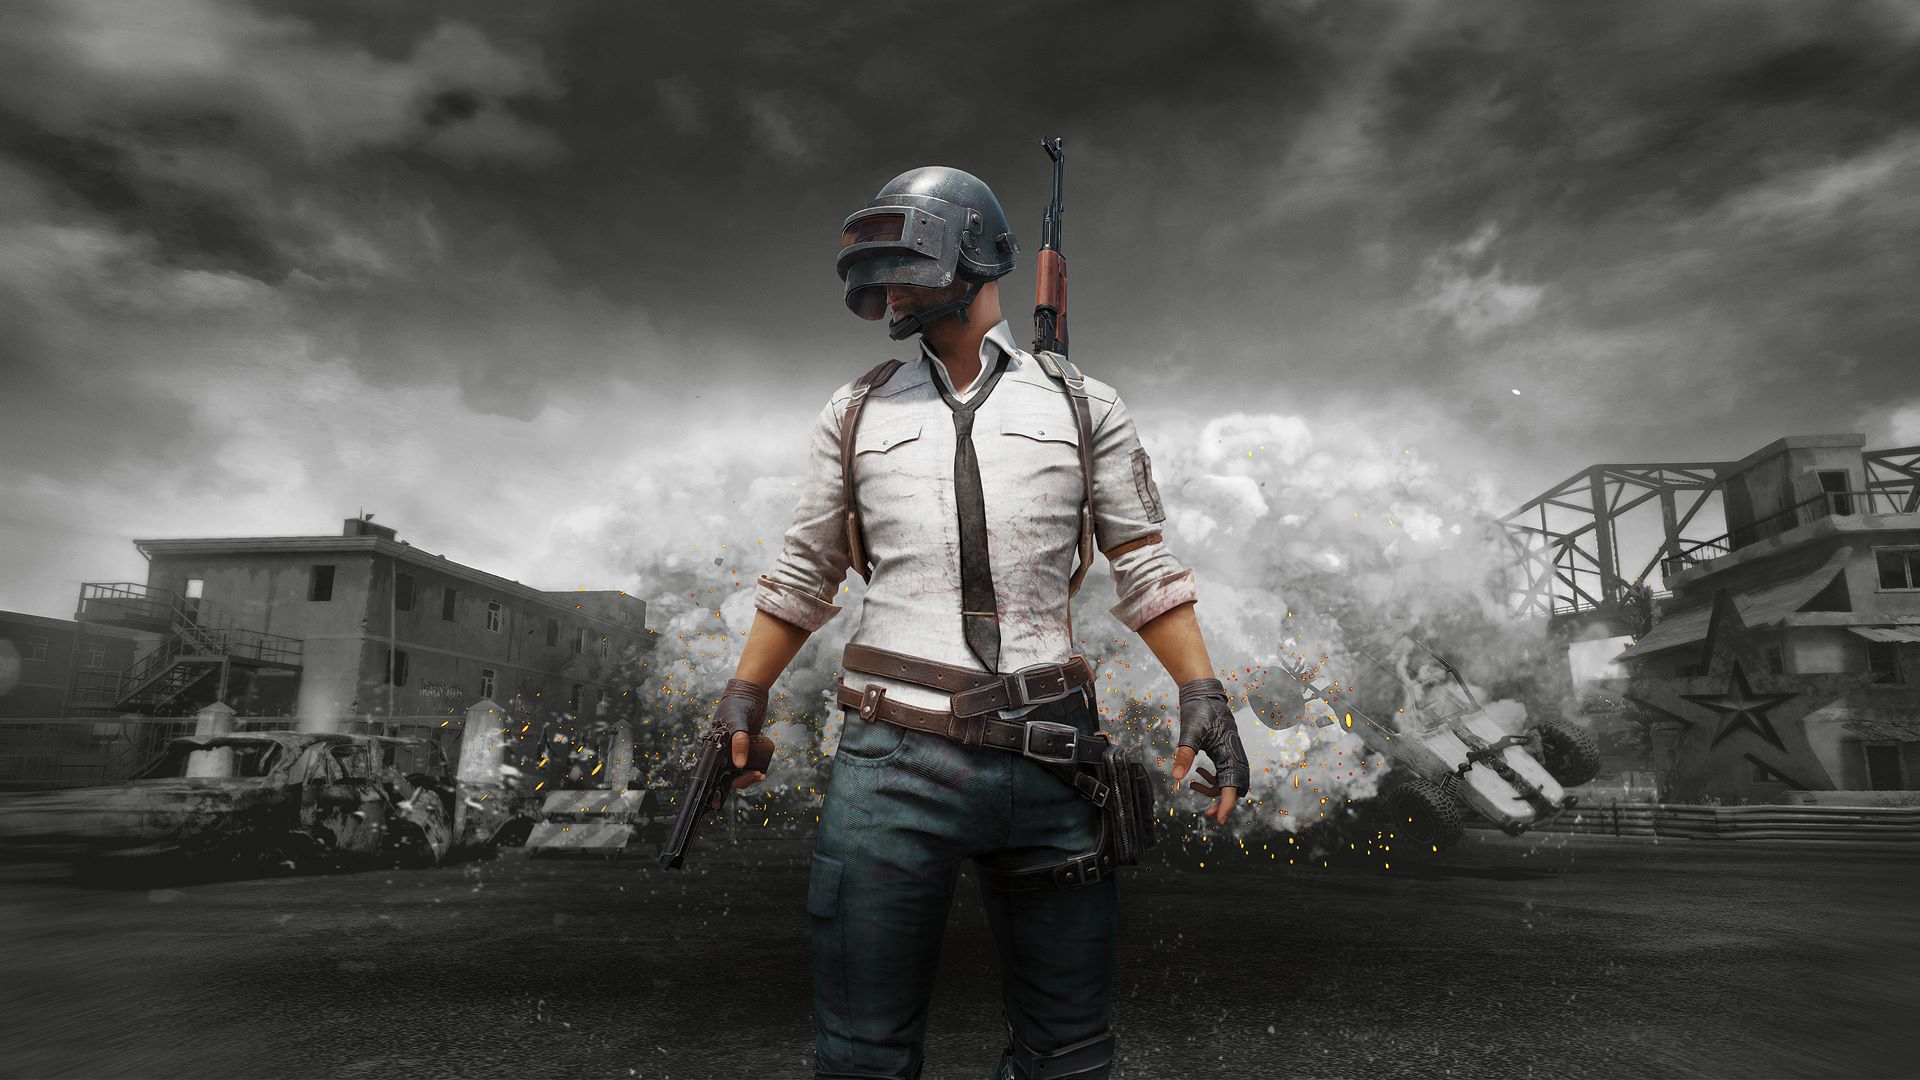 Pubg Lite Hd Tools: PUBG Lite Is A Bespoke New Version For Low-spec Computers